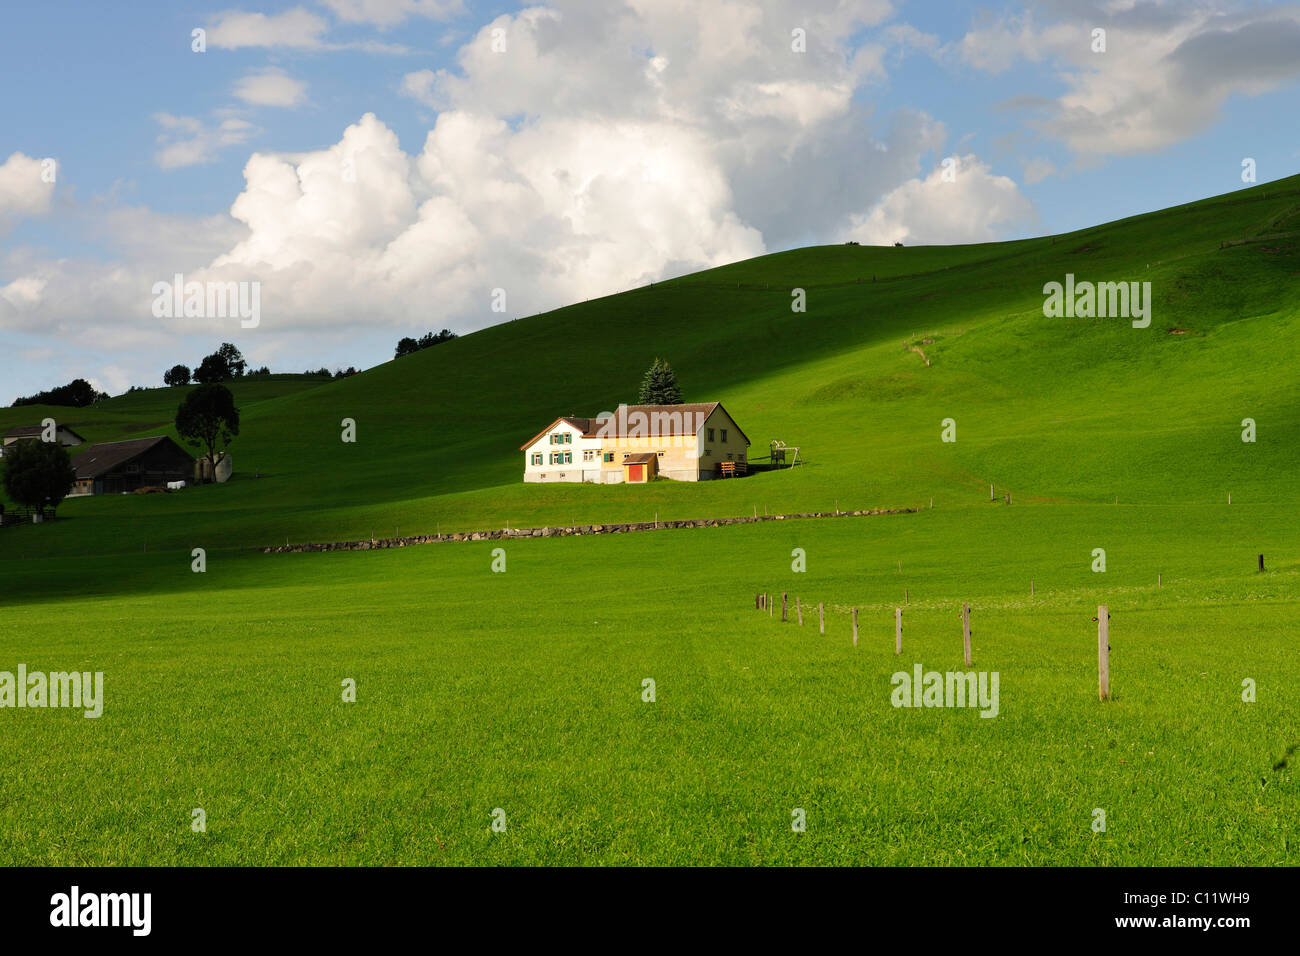 Farmhouse in the midst of green pastures, canton of Appenzell, Switzerland, Europe - Stock Image